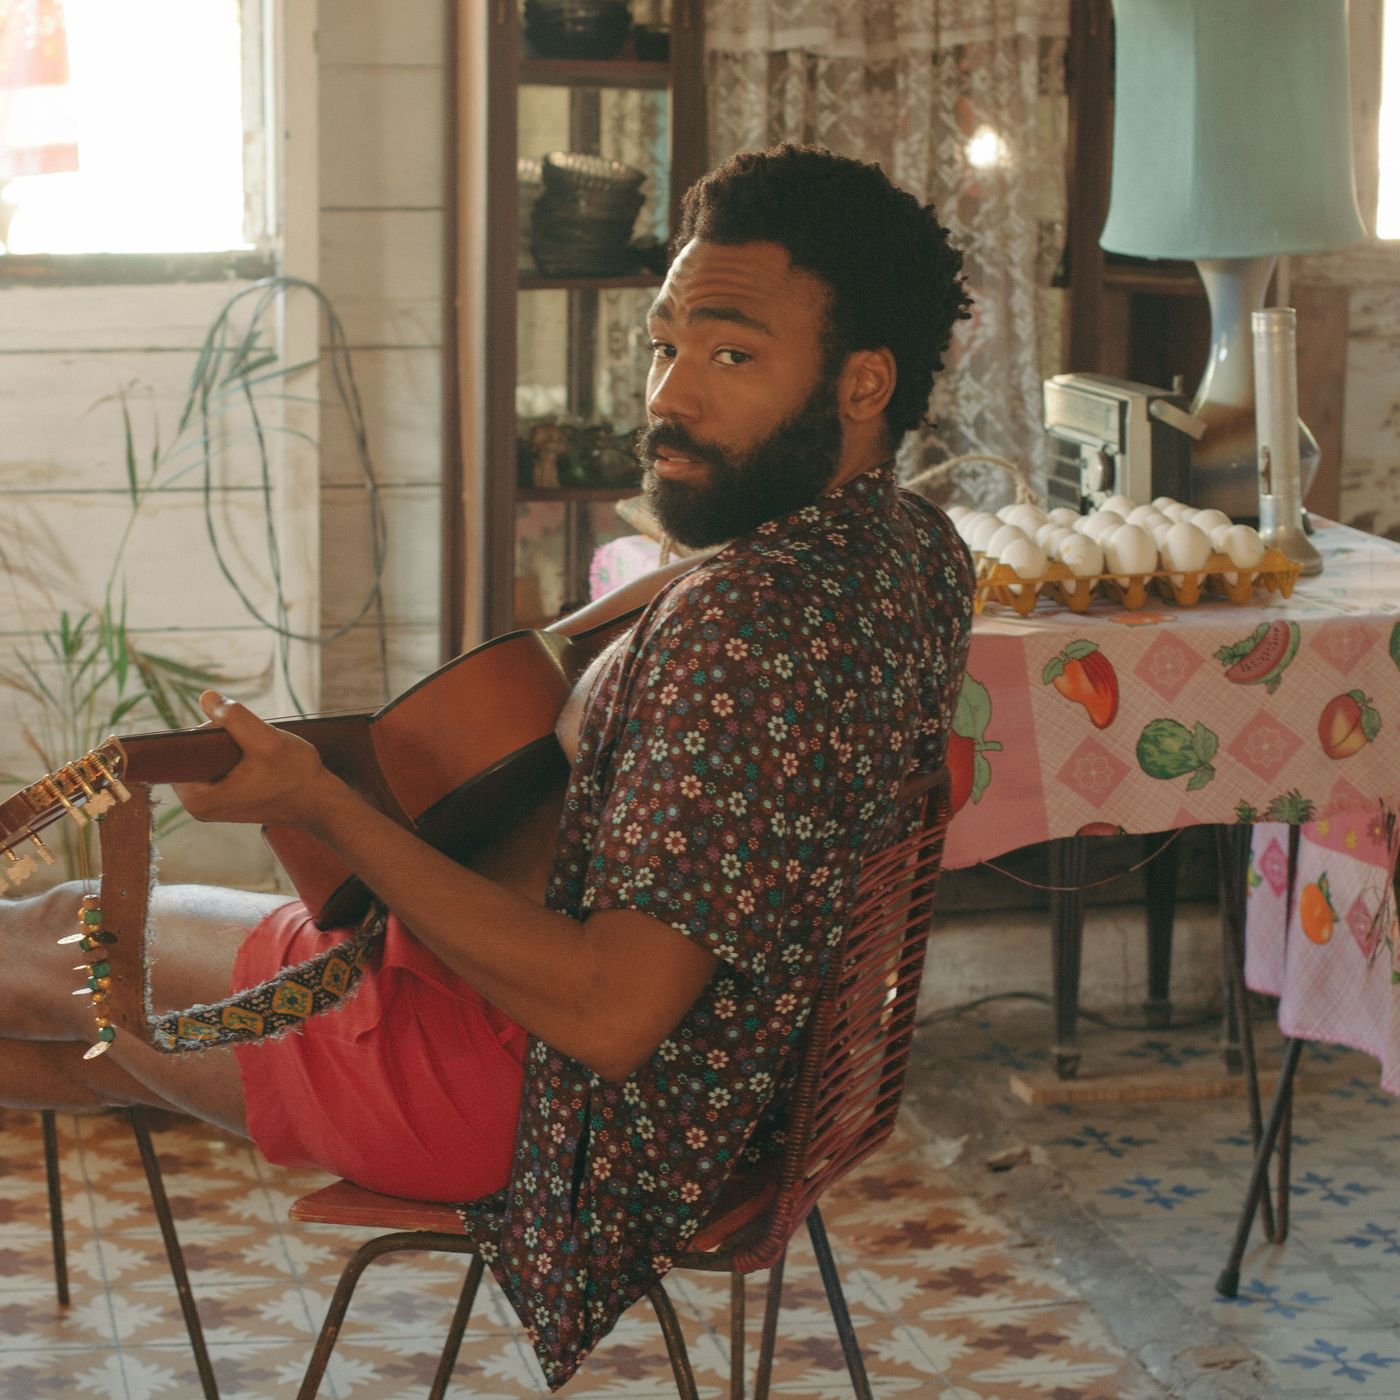 Guava Island review: Donald Glover and Rihanna's new movie